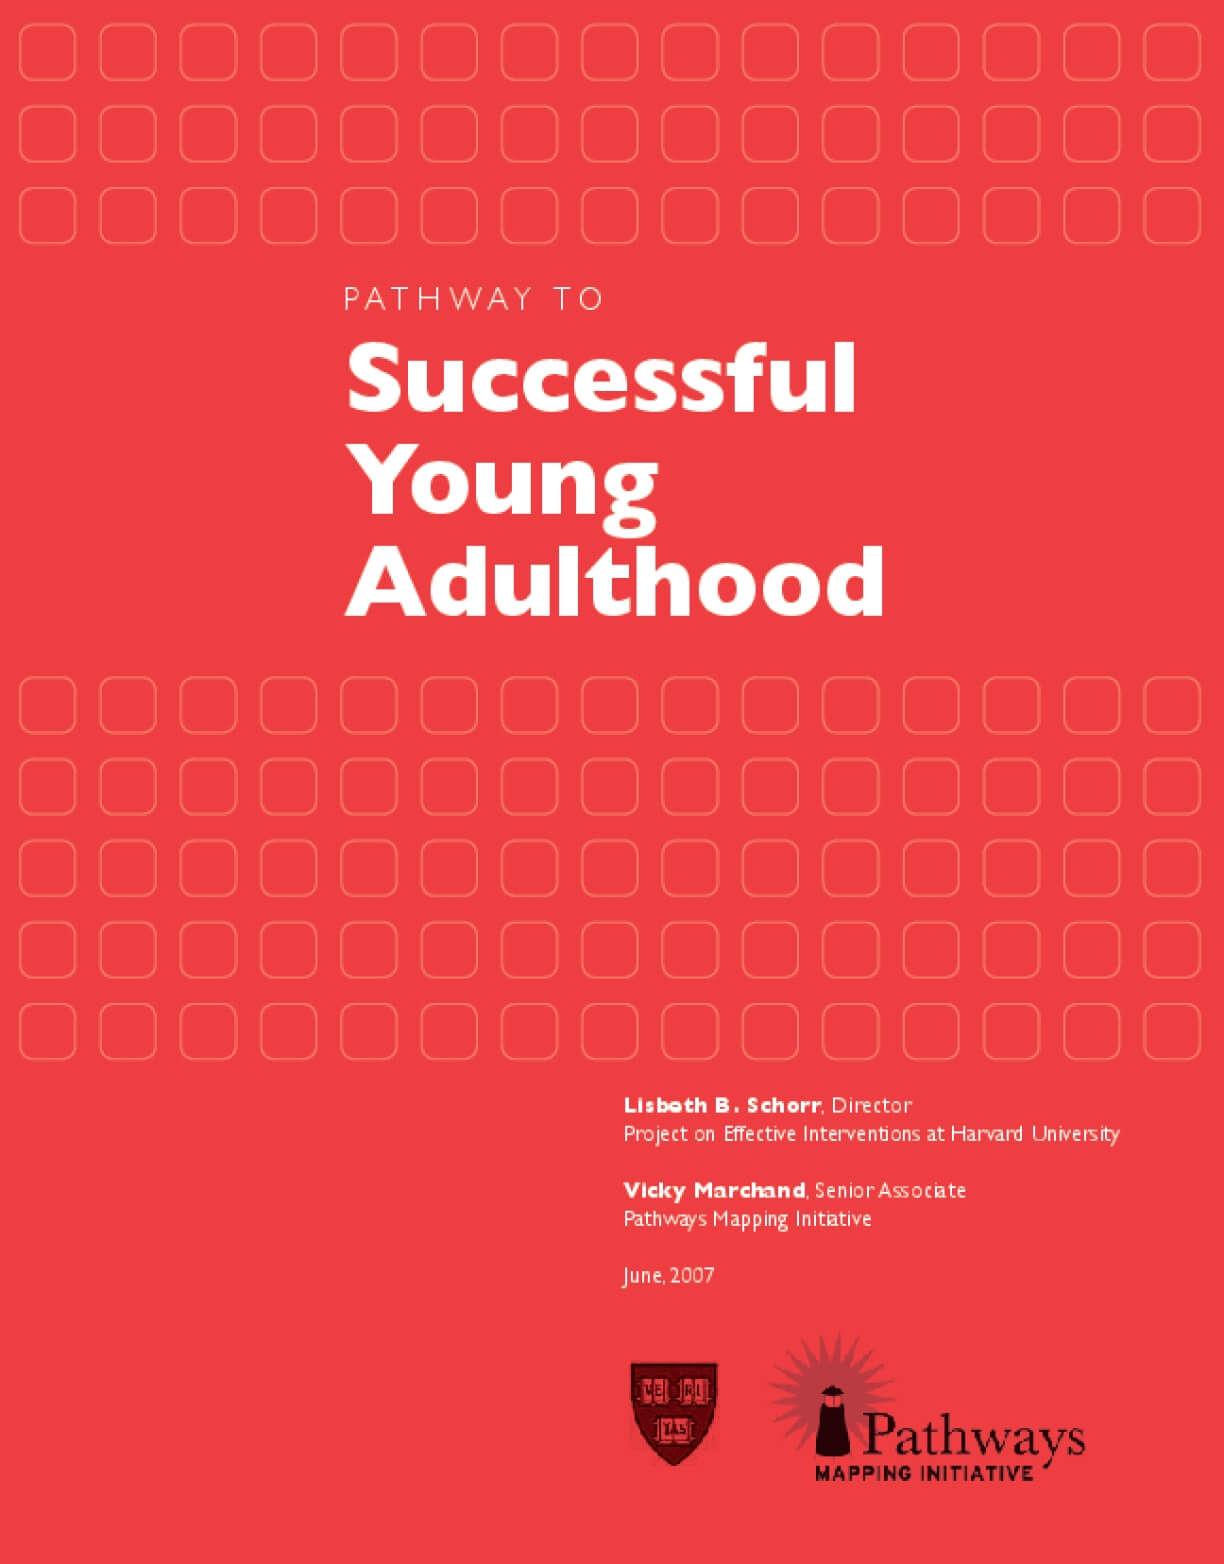 Pathway to Successful Young Adulthood